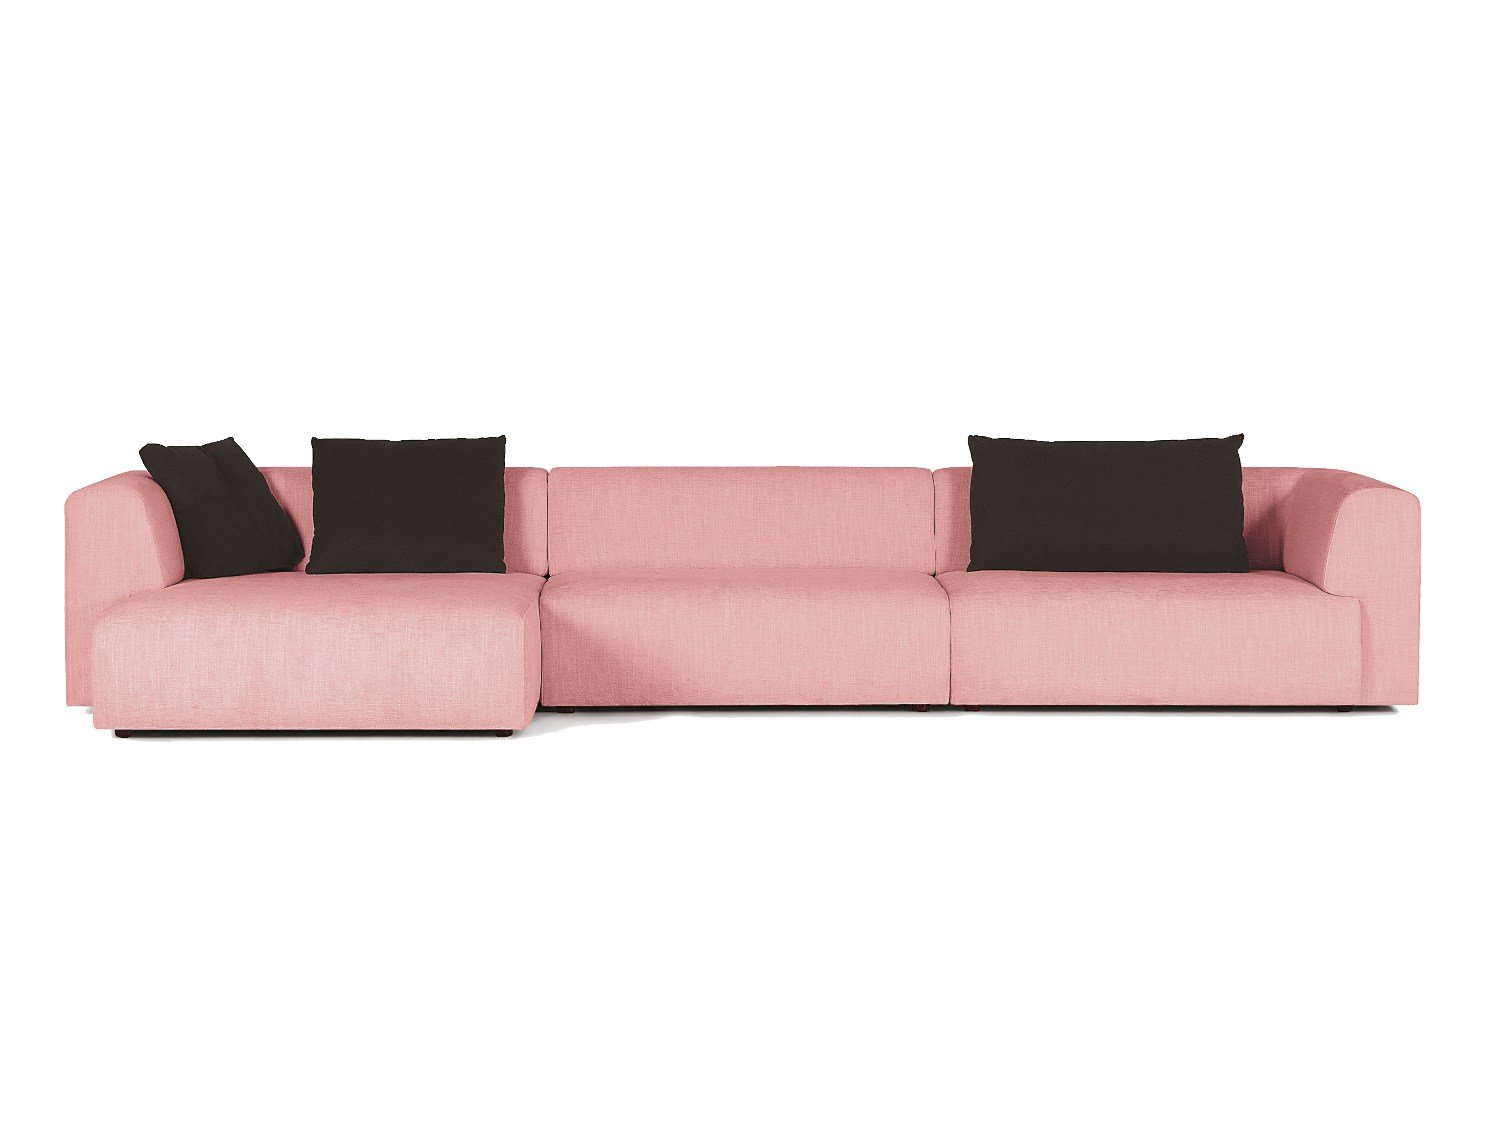 Duo sofa with chaise longue by sancal design rafa garc a for Chaise longue design piscine